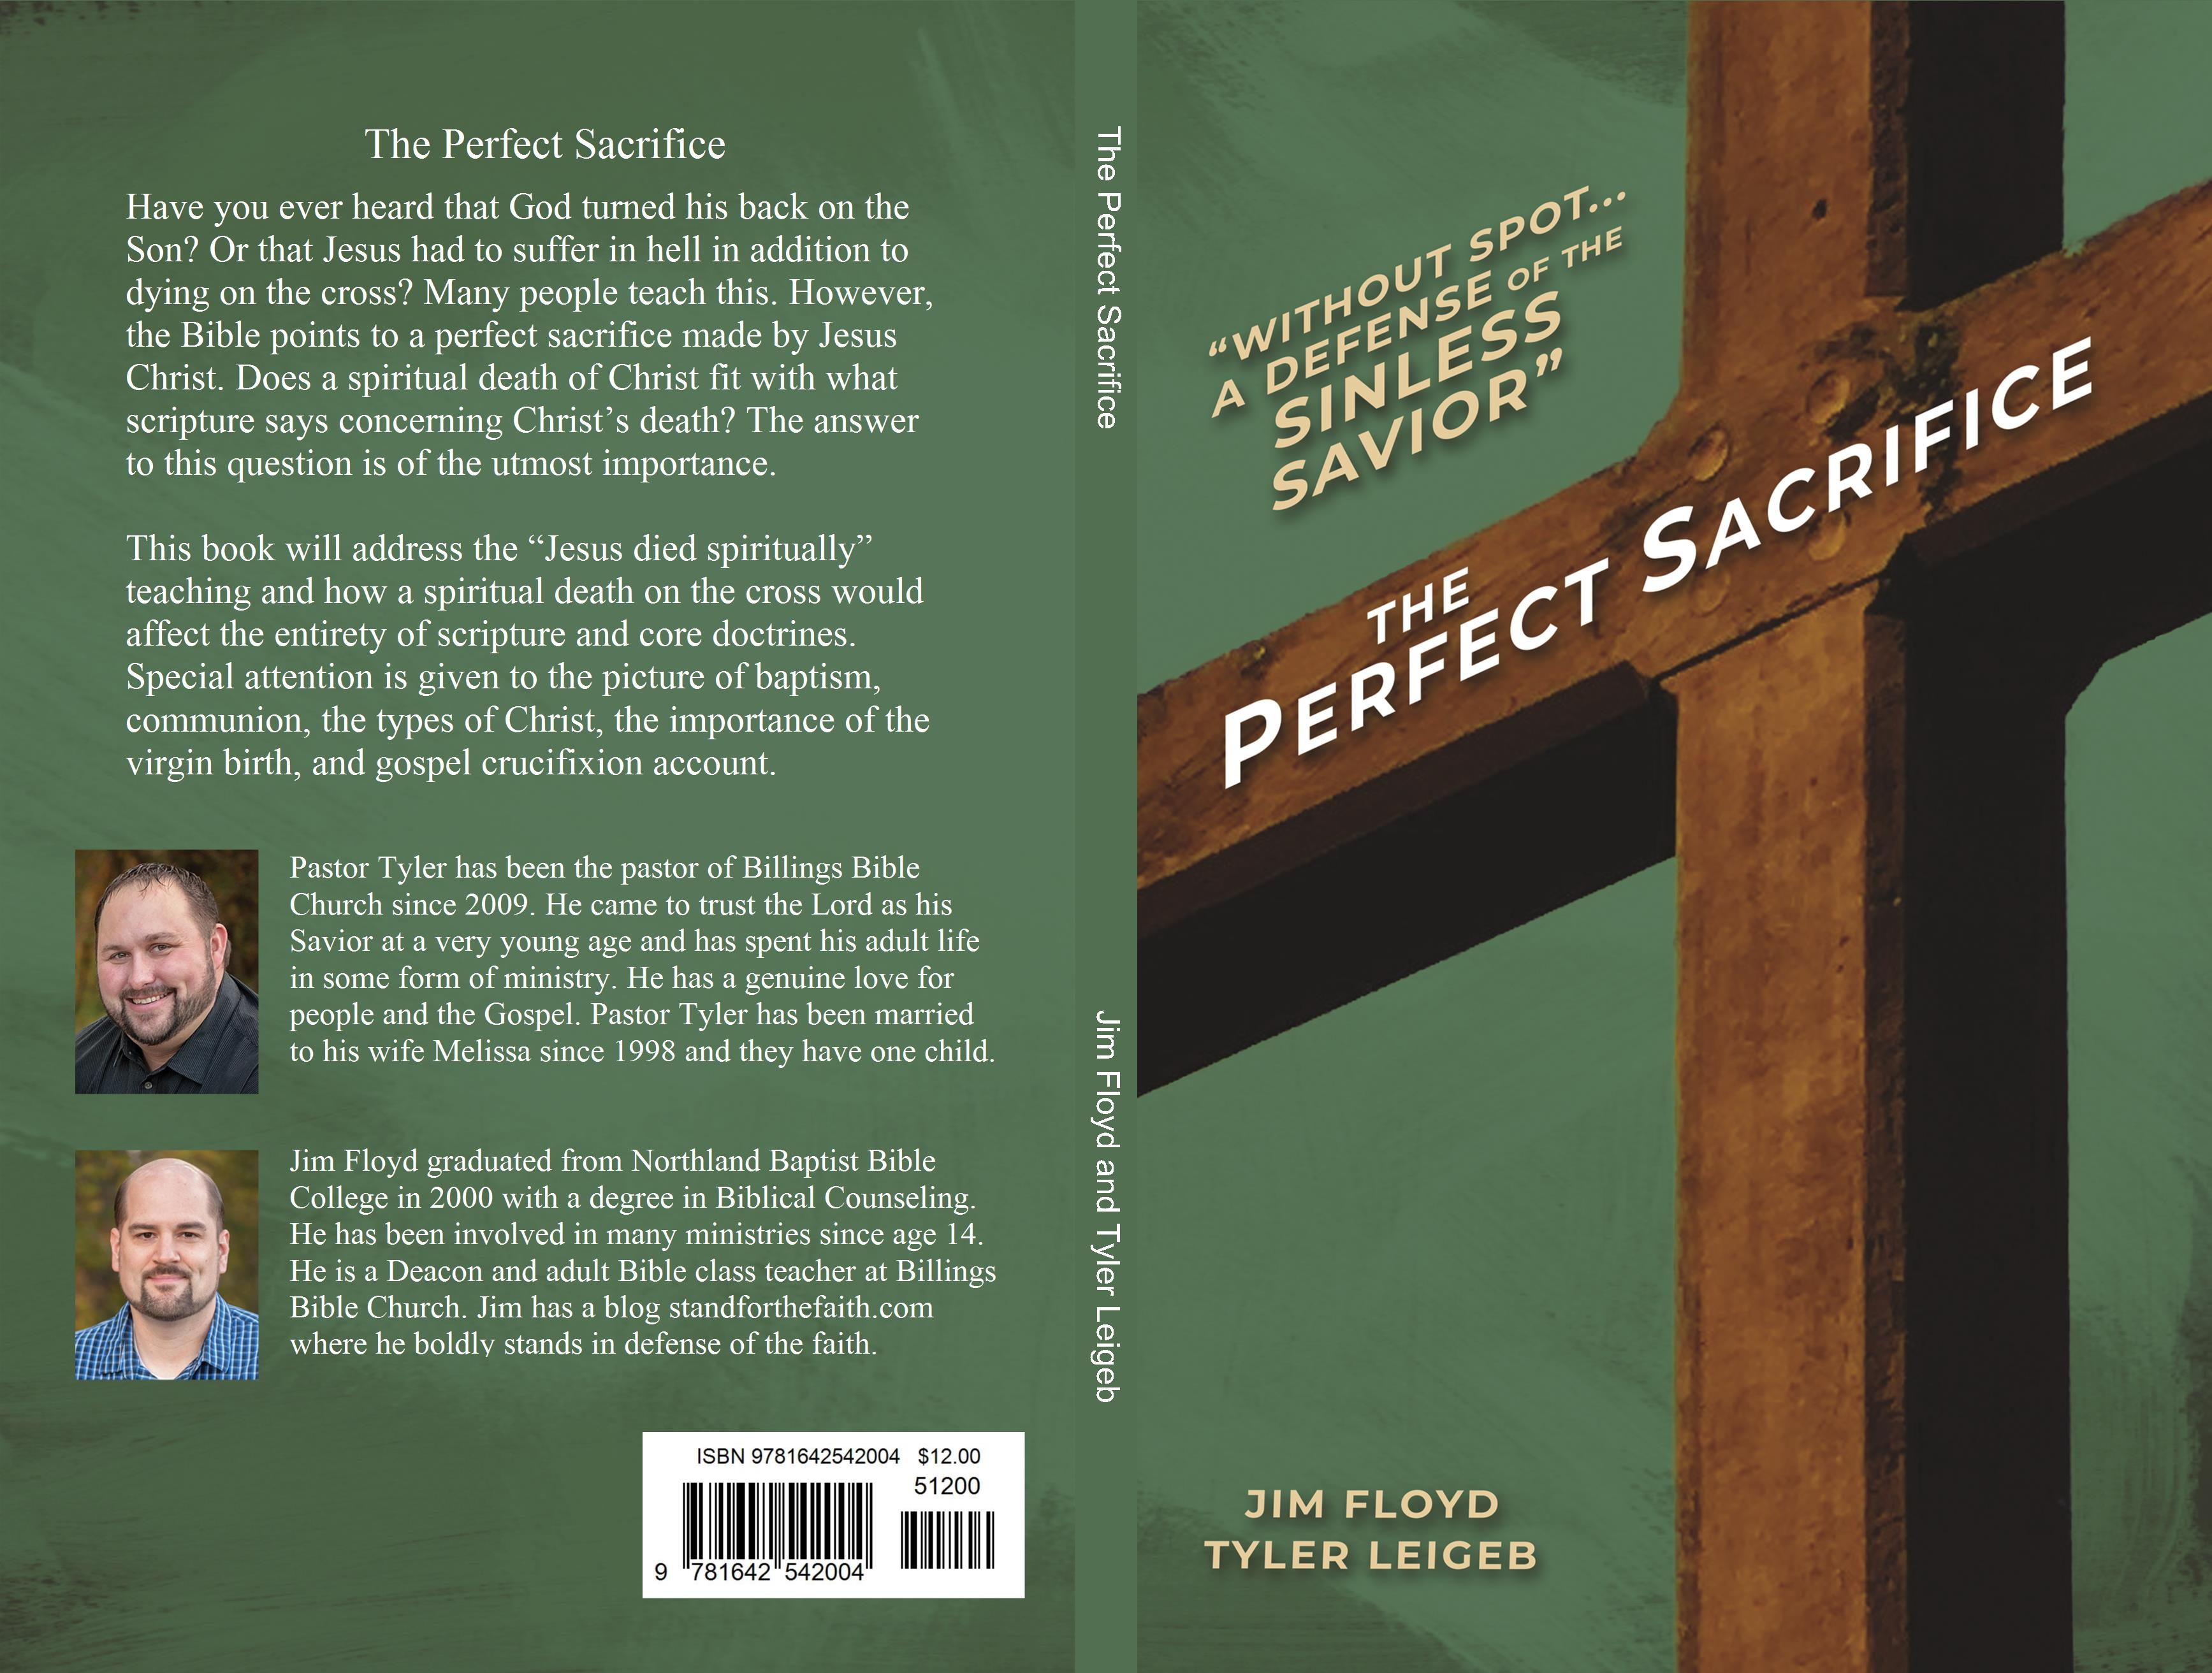 The Perfect Sacrifice cover image